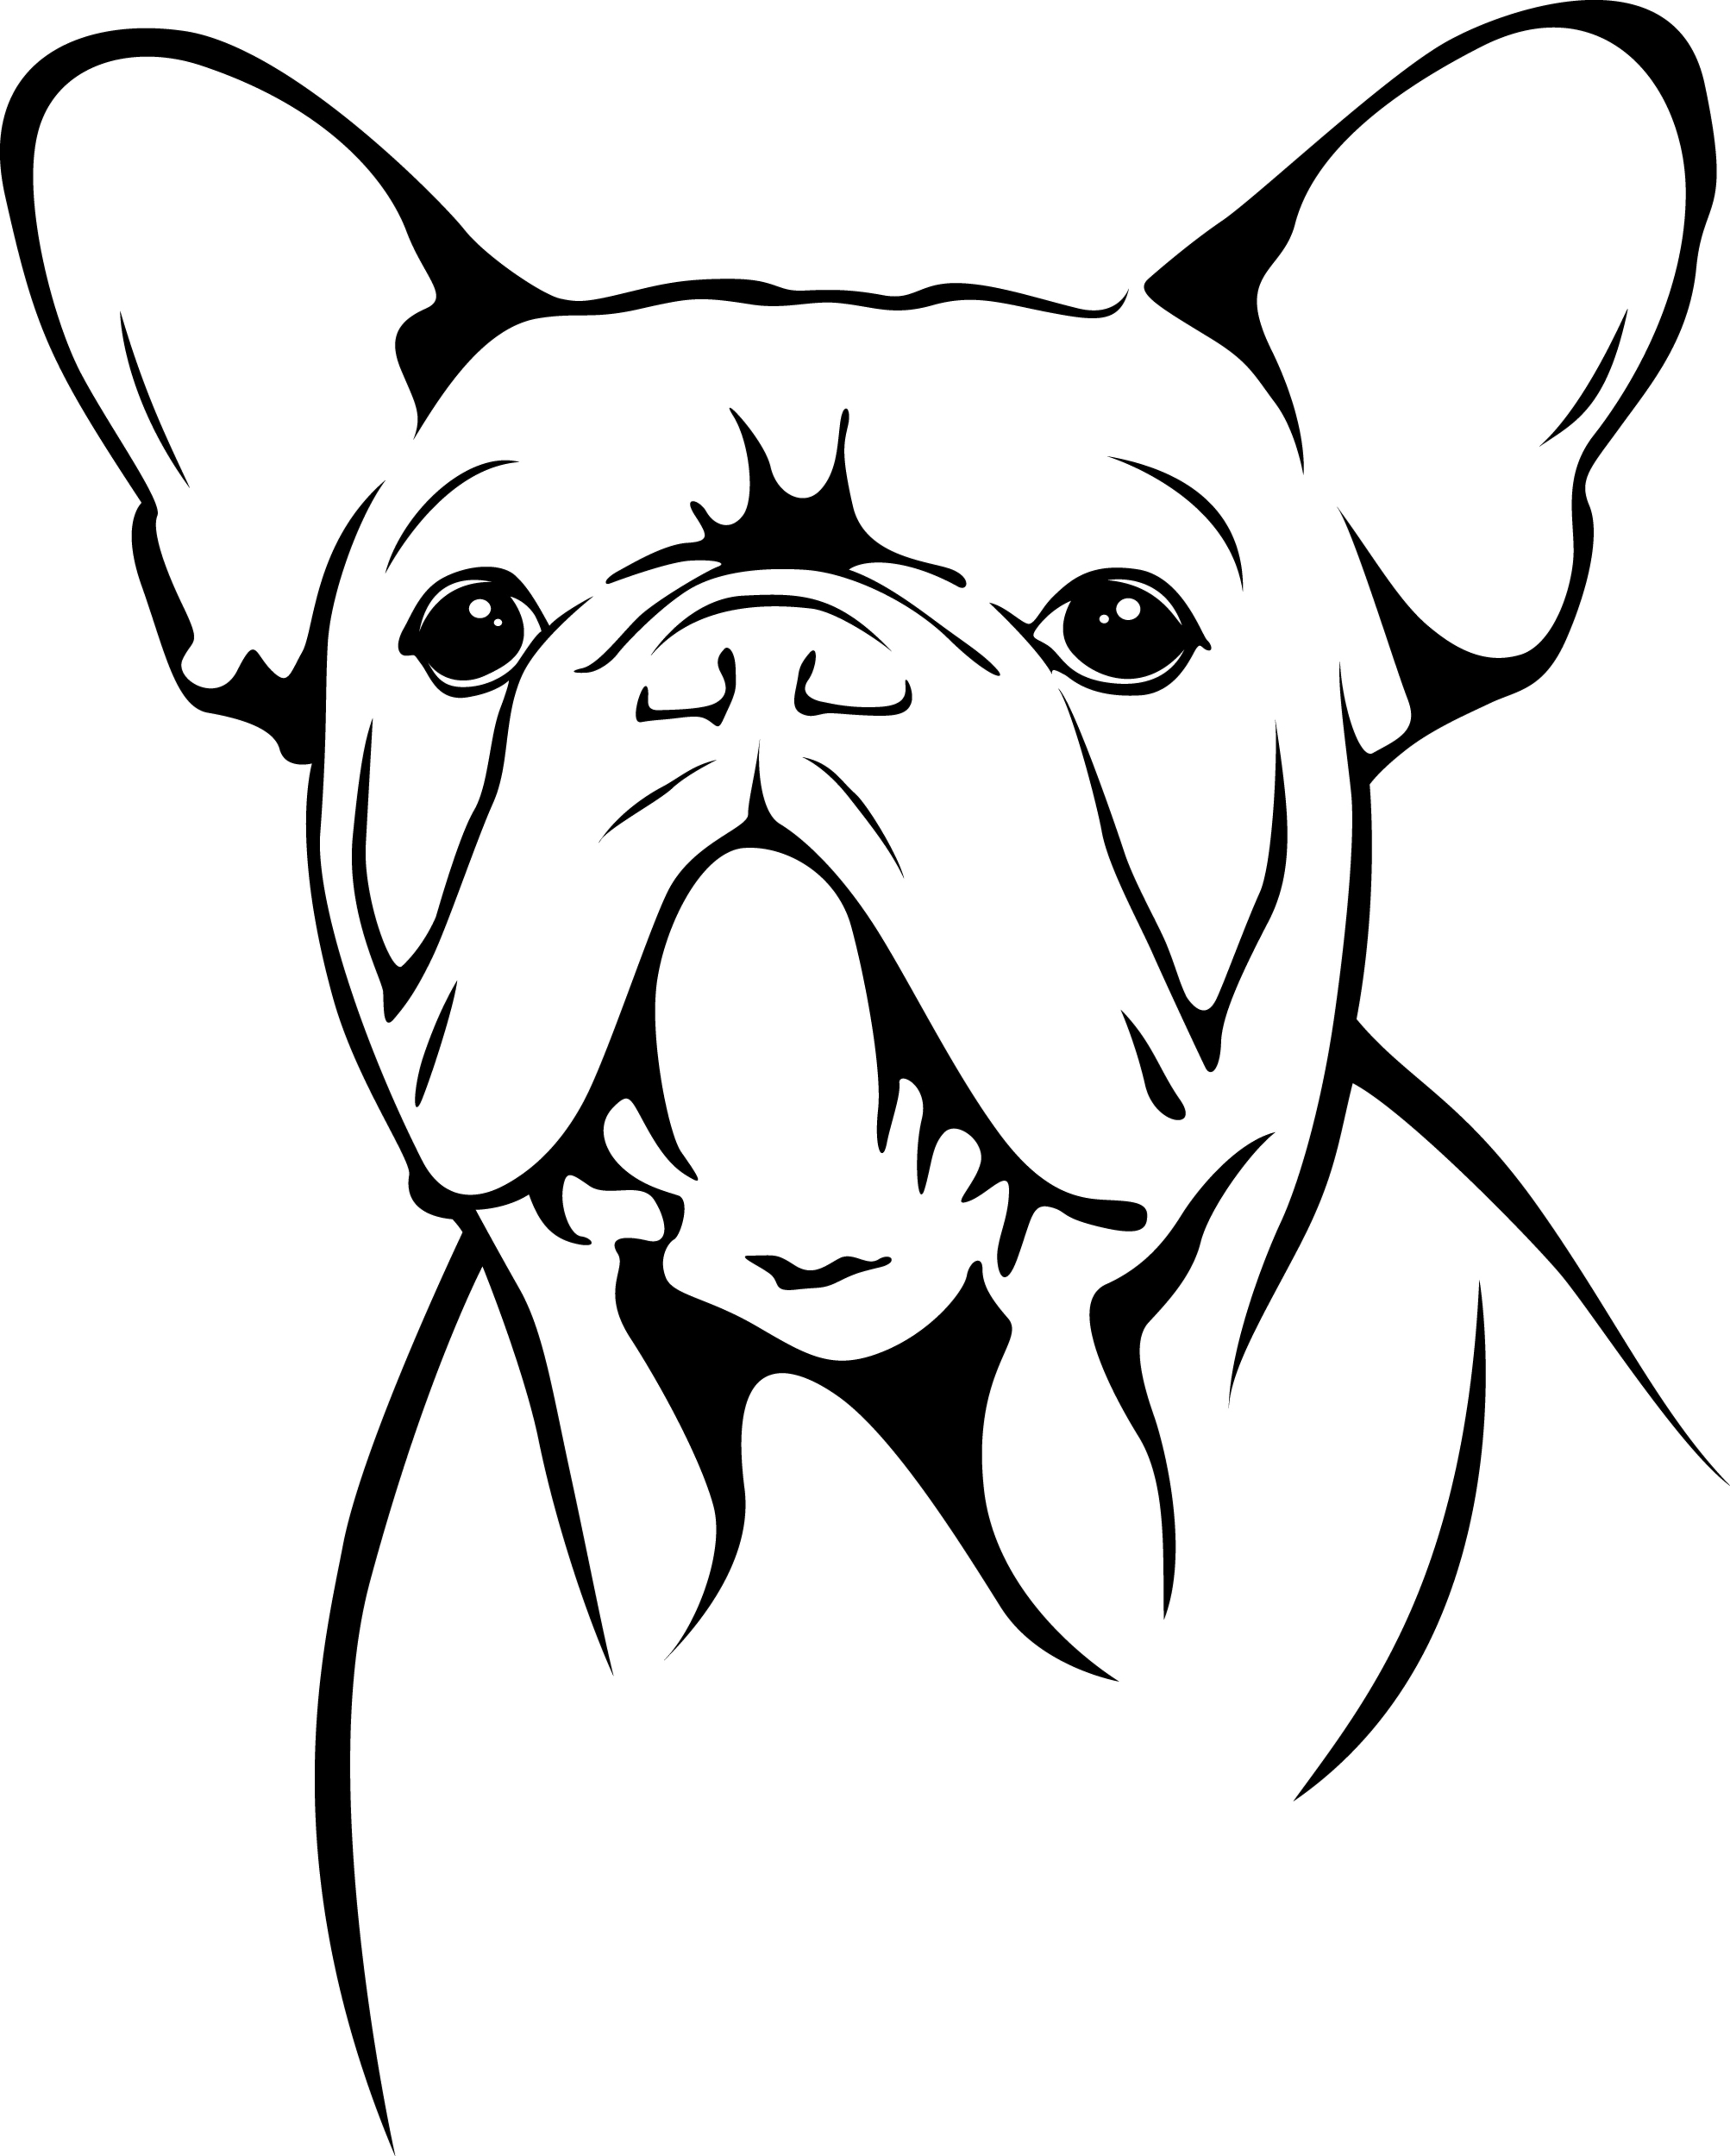 3469x4324 Unique Bulldog Coloring Page Gallery Printable Coloring Sheet